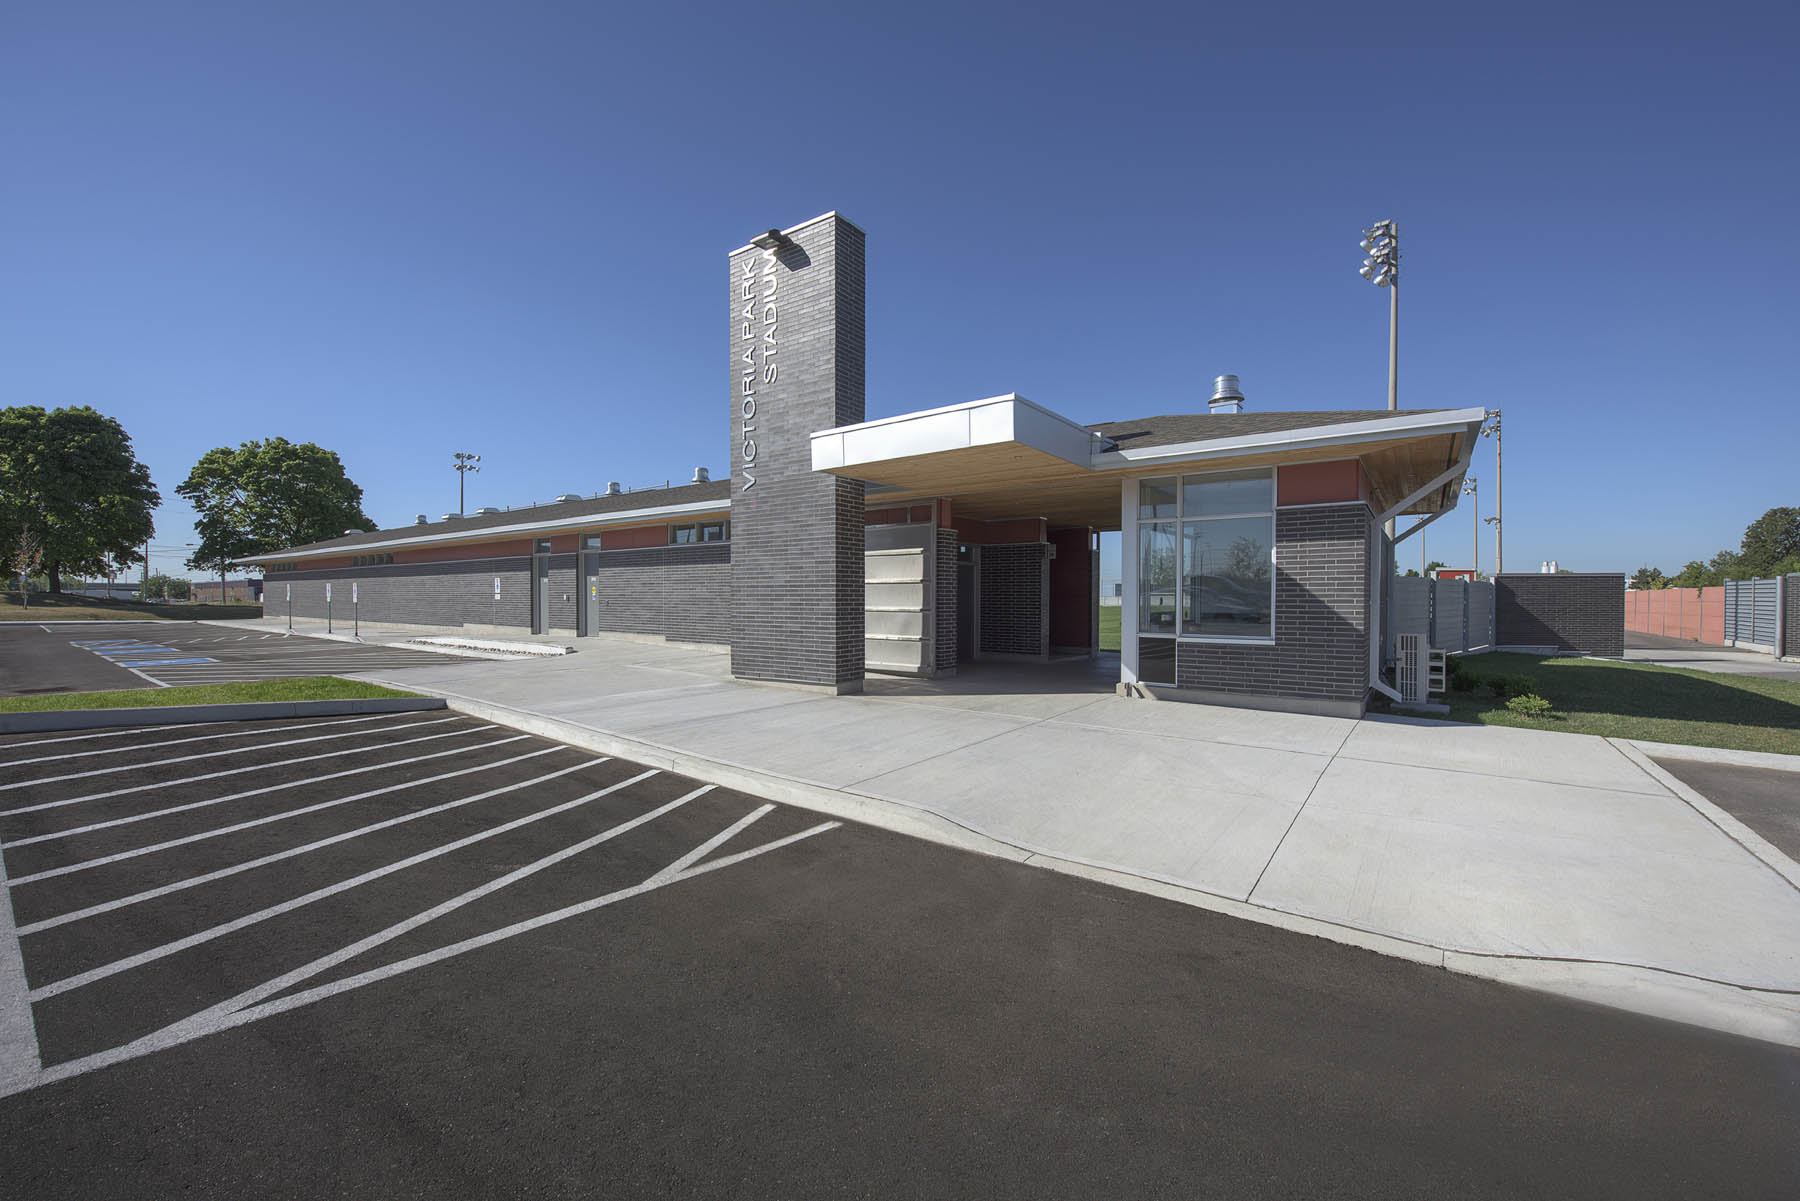 View of fieldhouse from parking lot with cantilevered gateway entrance with tall grey brick column with signage